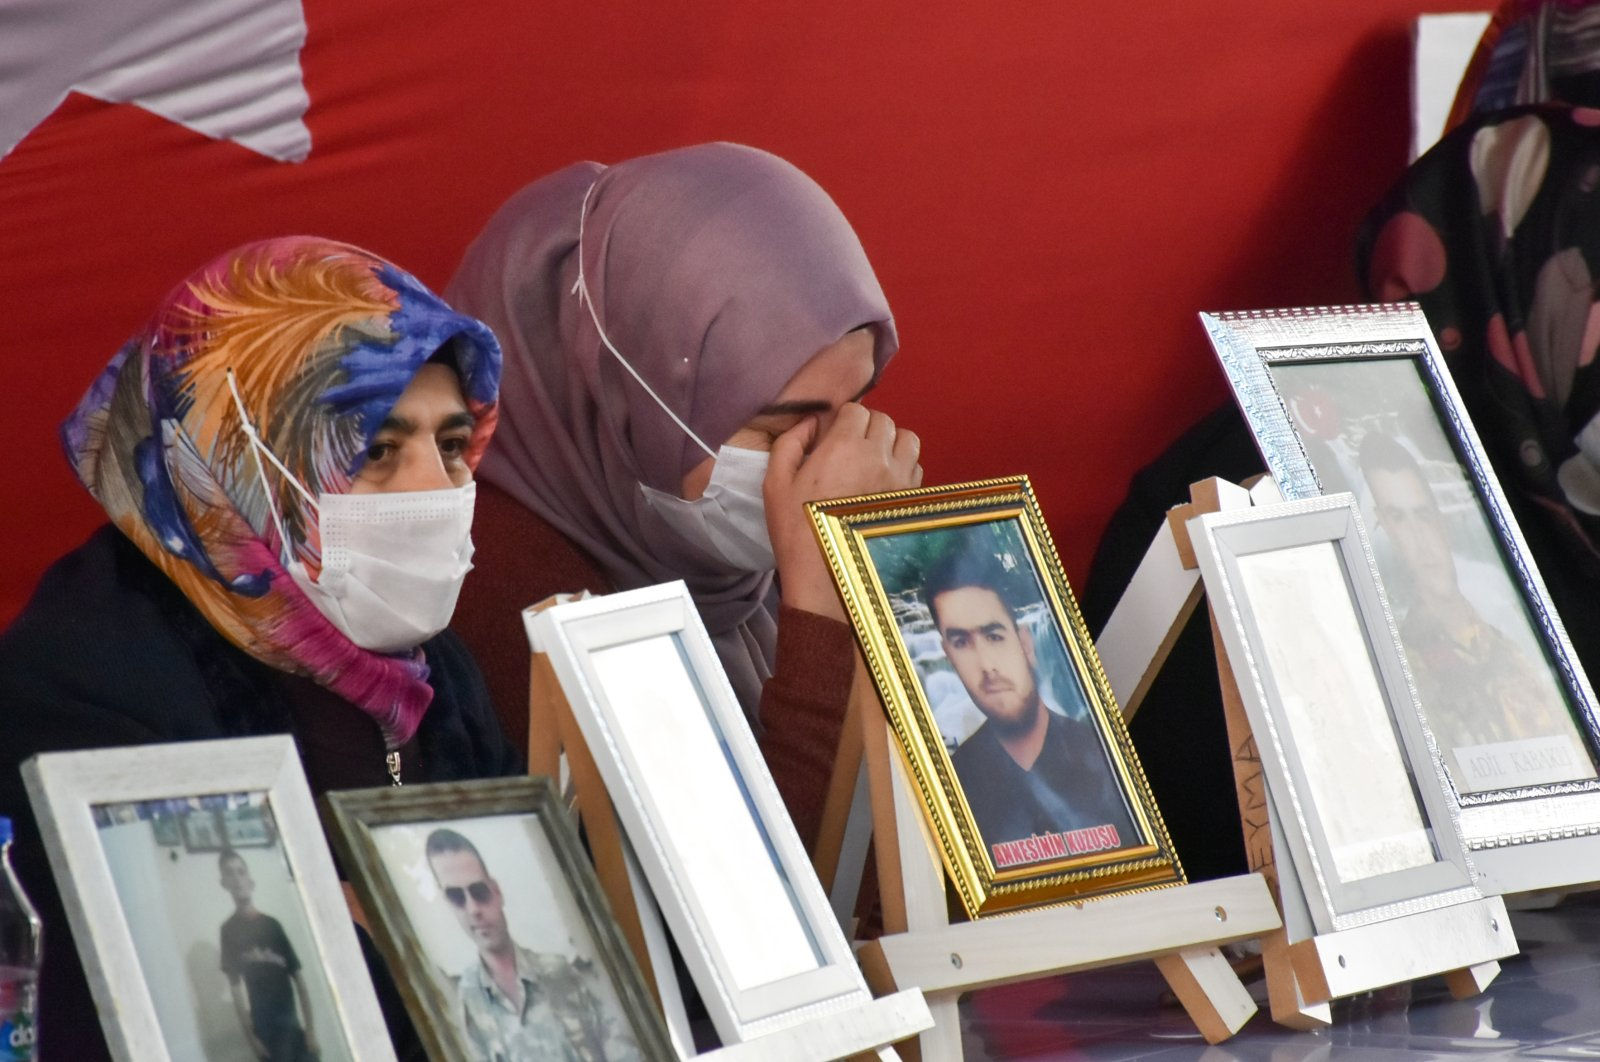 Families protesting the abduction of their relatives by the PKK continue their sit-in for the 500th day, Diyarbakır, southeastern Turkey, Jan. 14, 2021. (AA Photo)